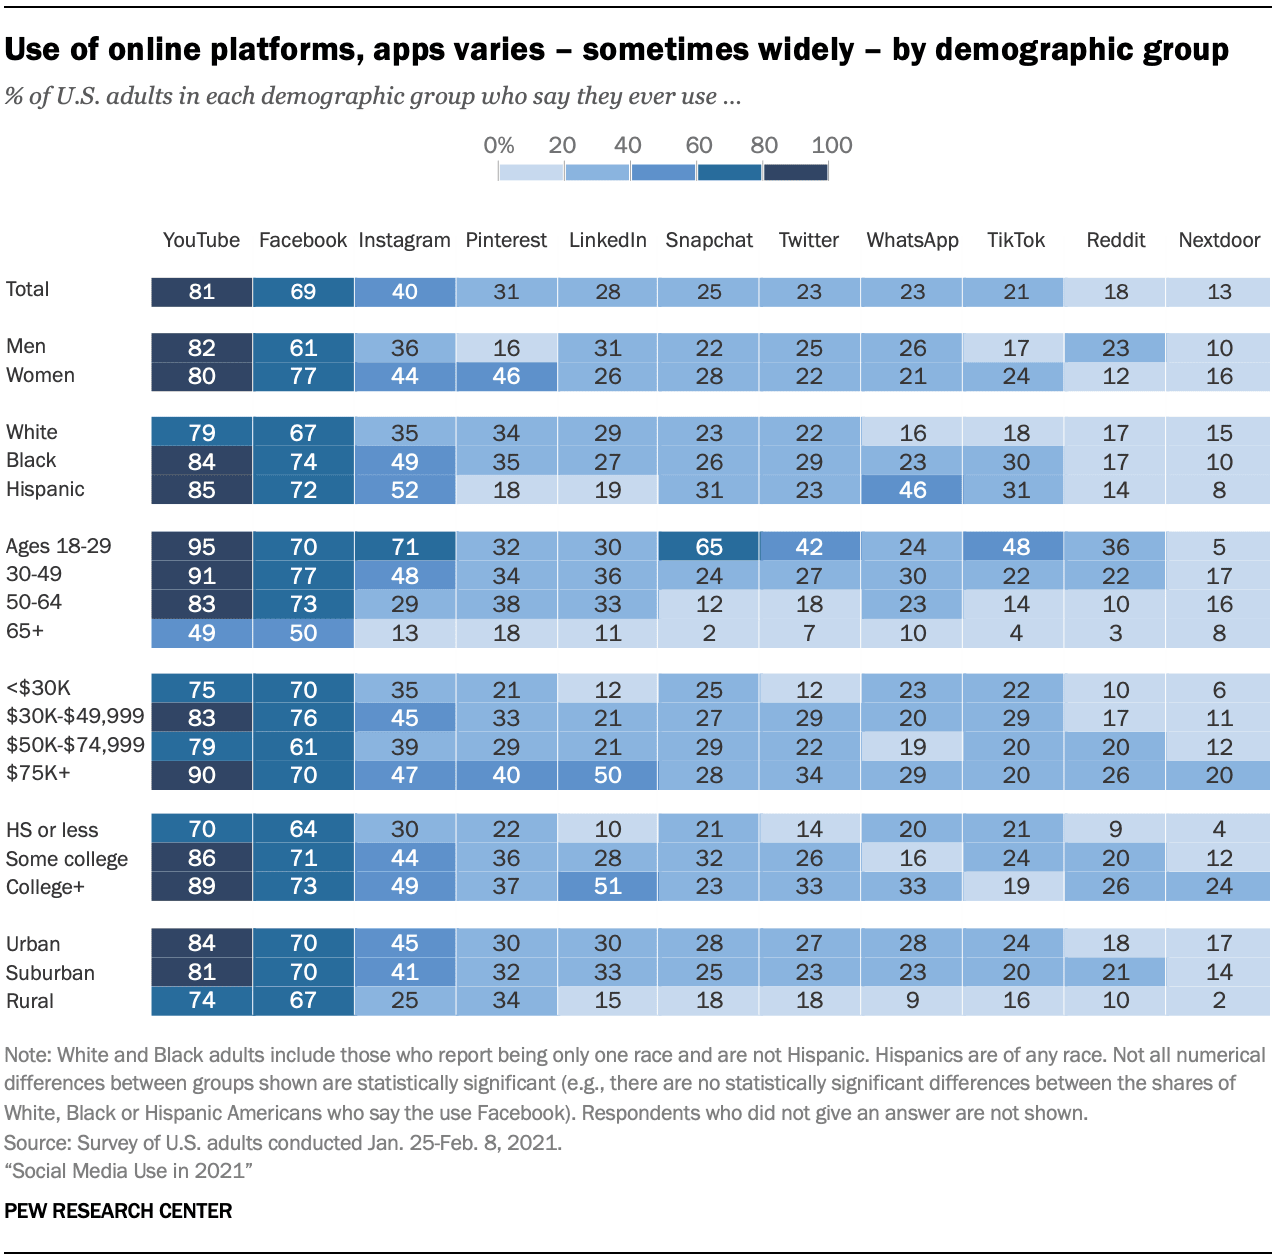 Use of social media platforms, apps varies - sometimes widely-by demographic group